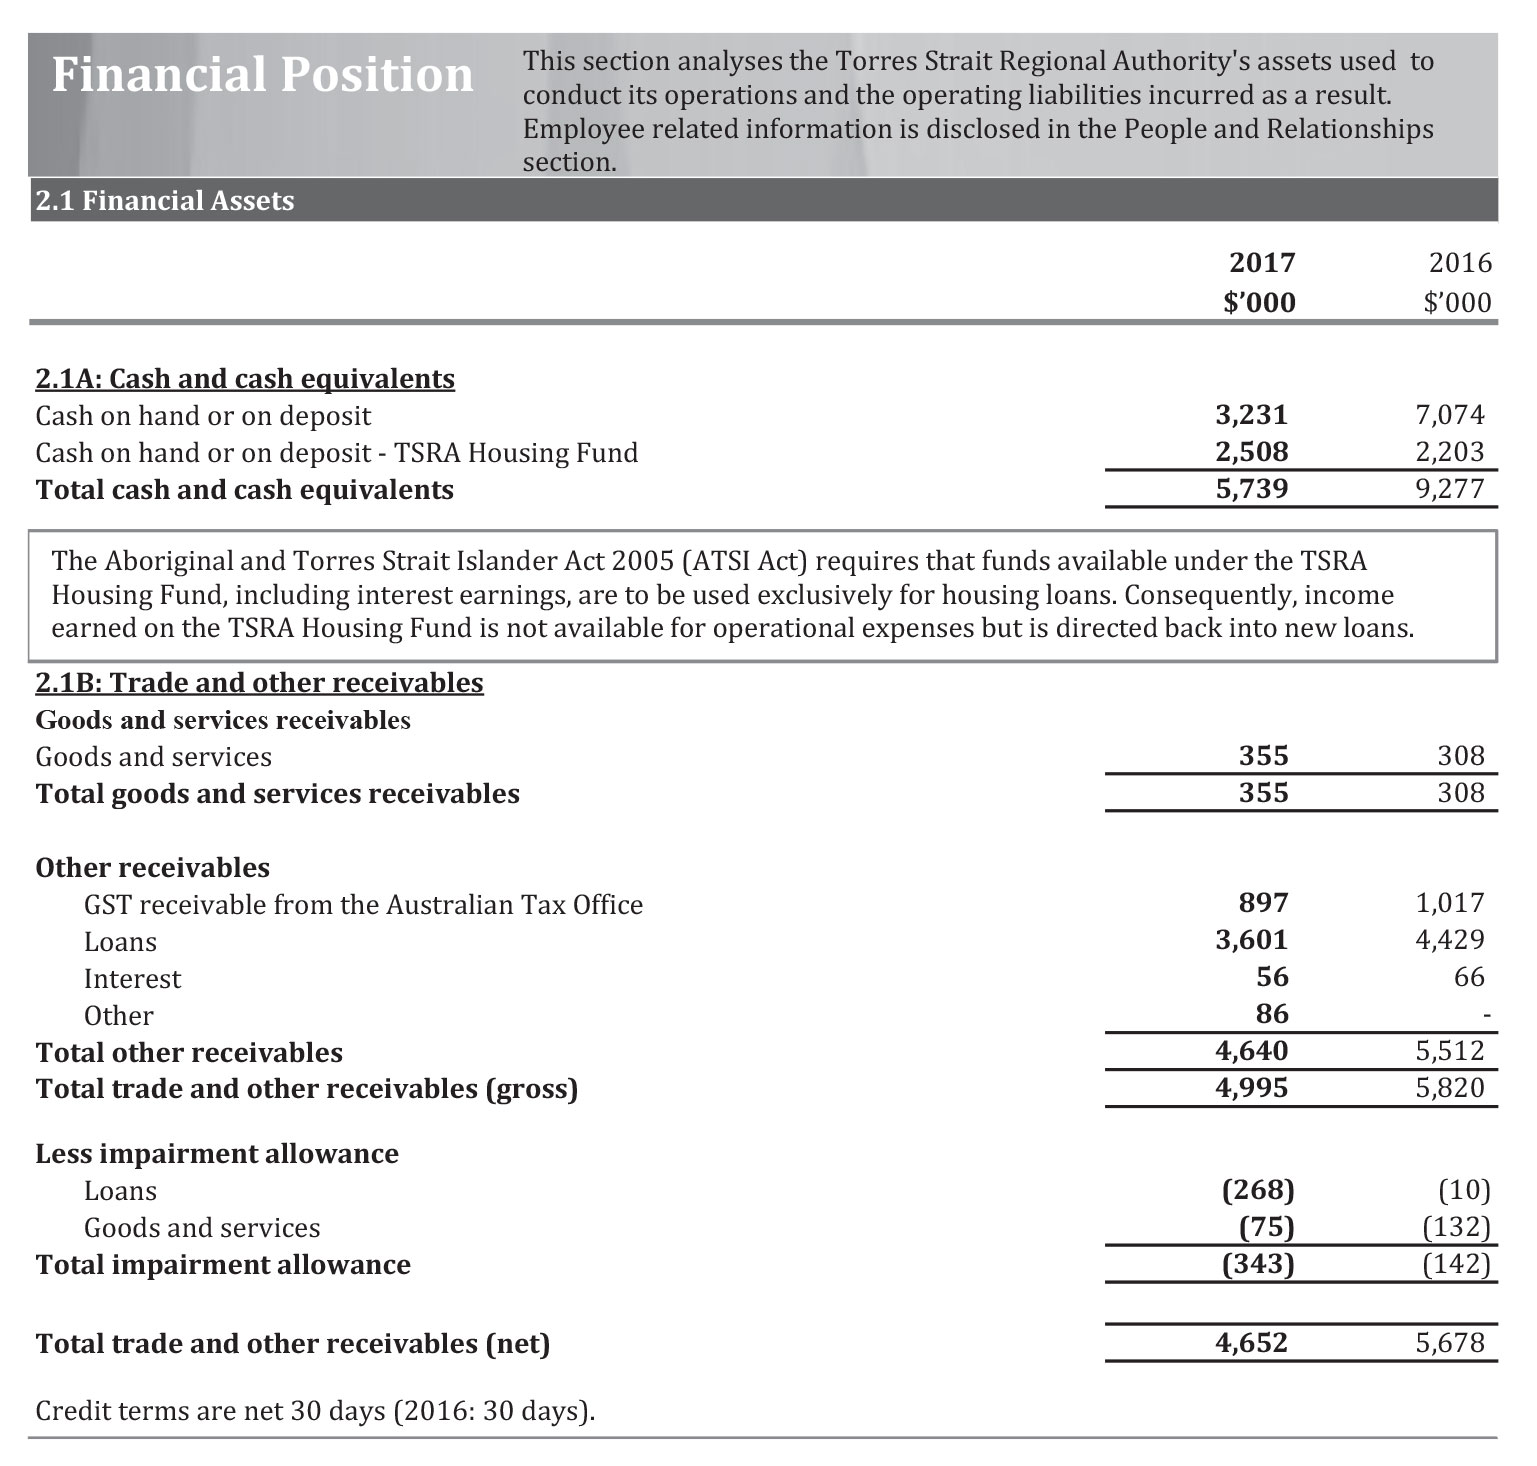 a photograph of Financial Position document (page 4)